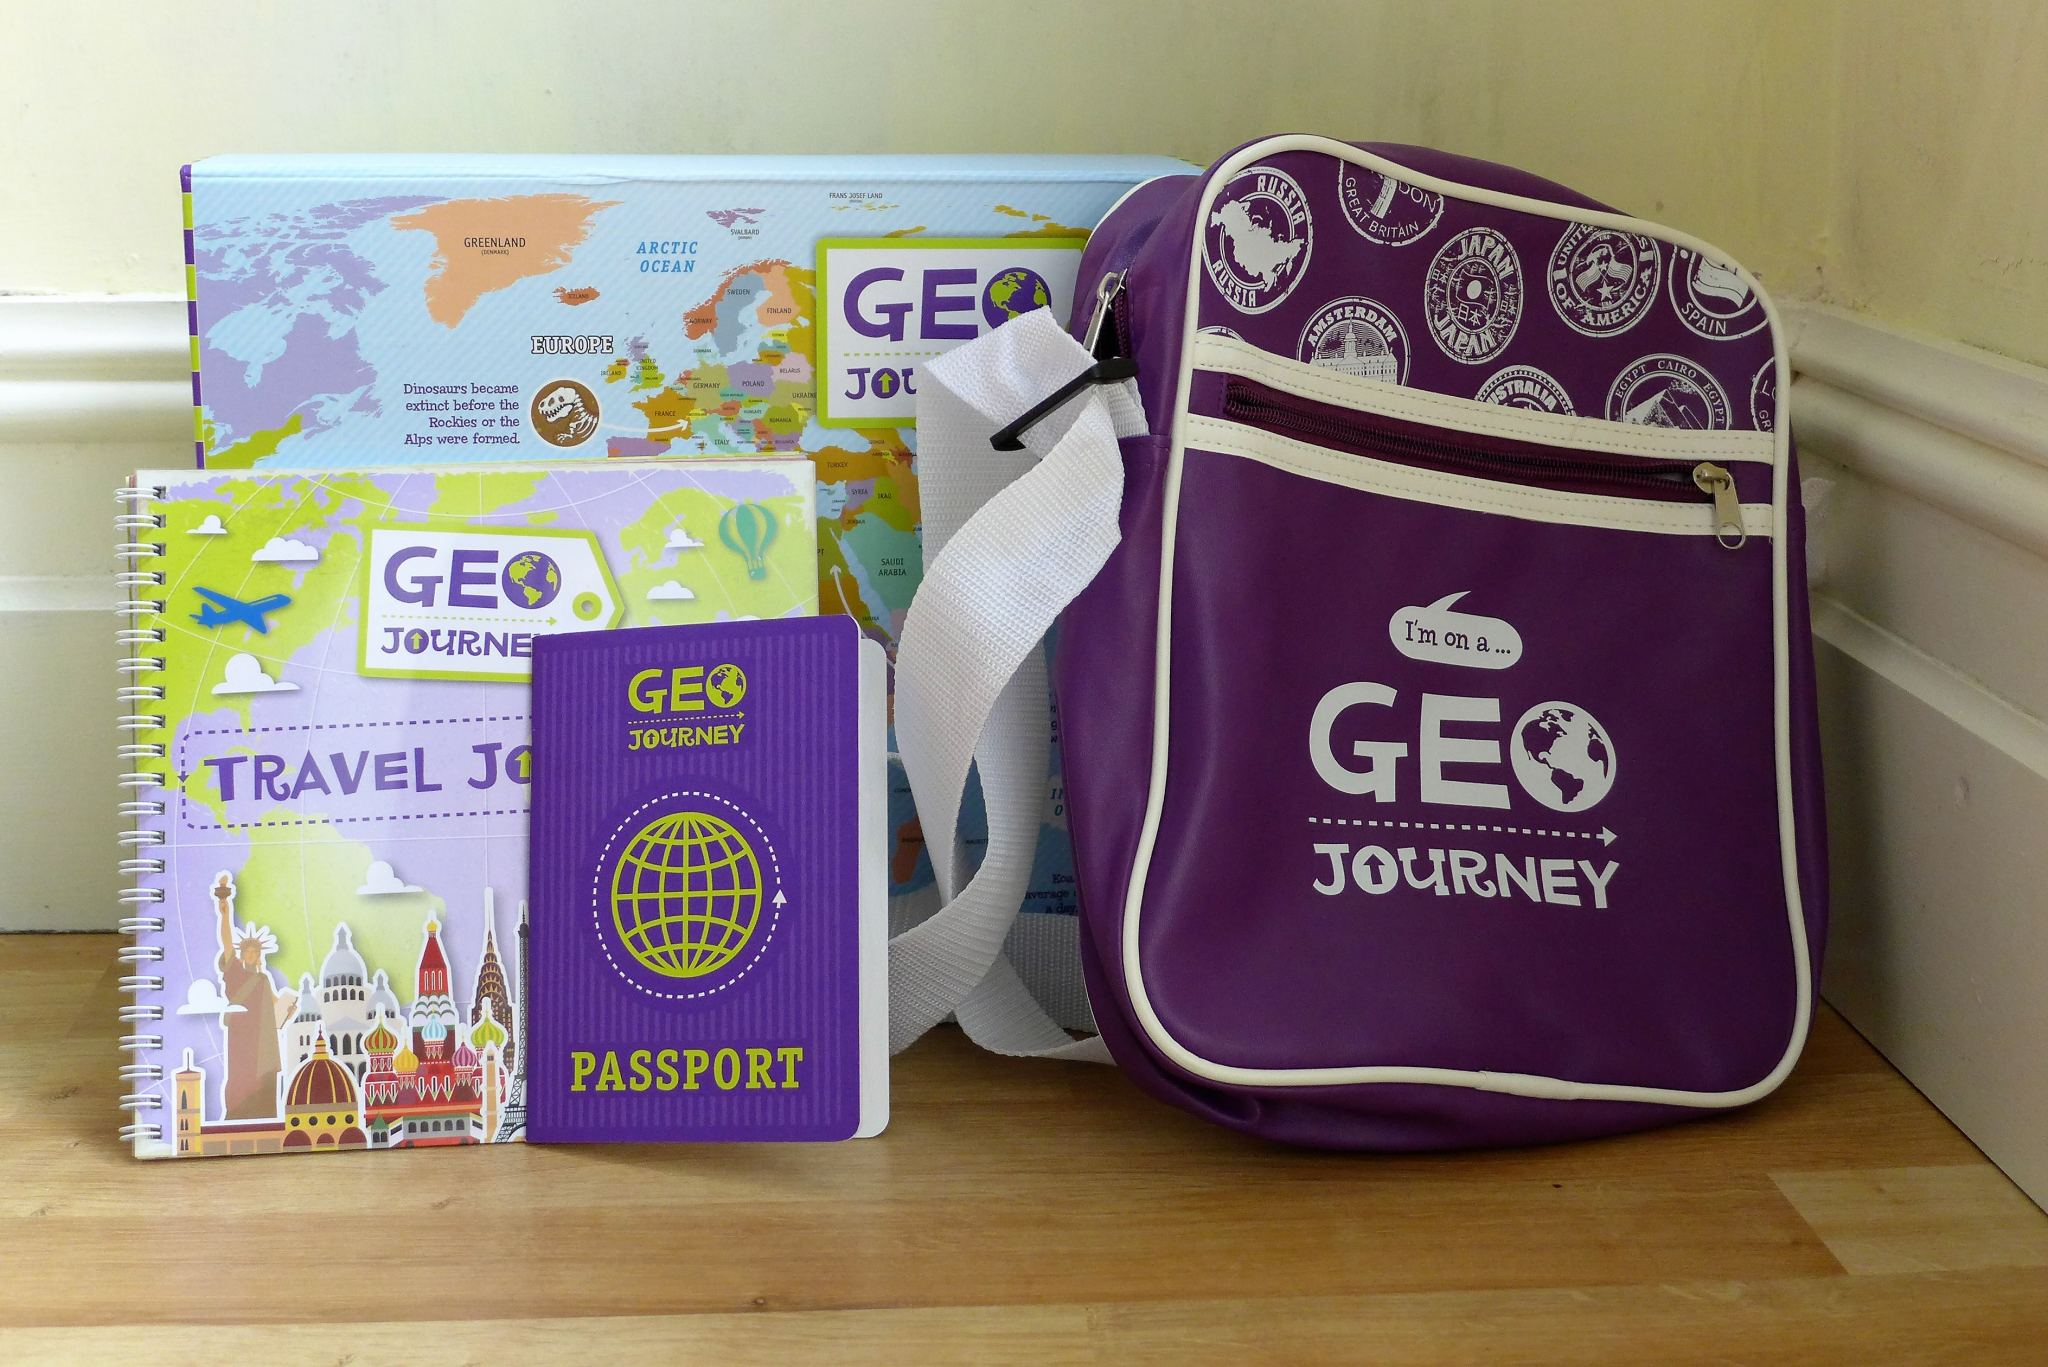 Geo Journey subscription box